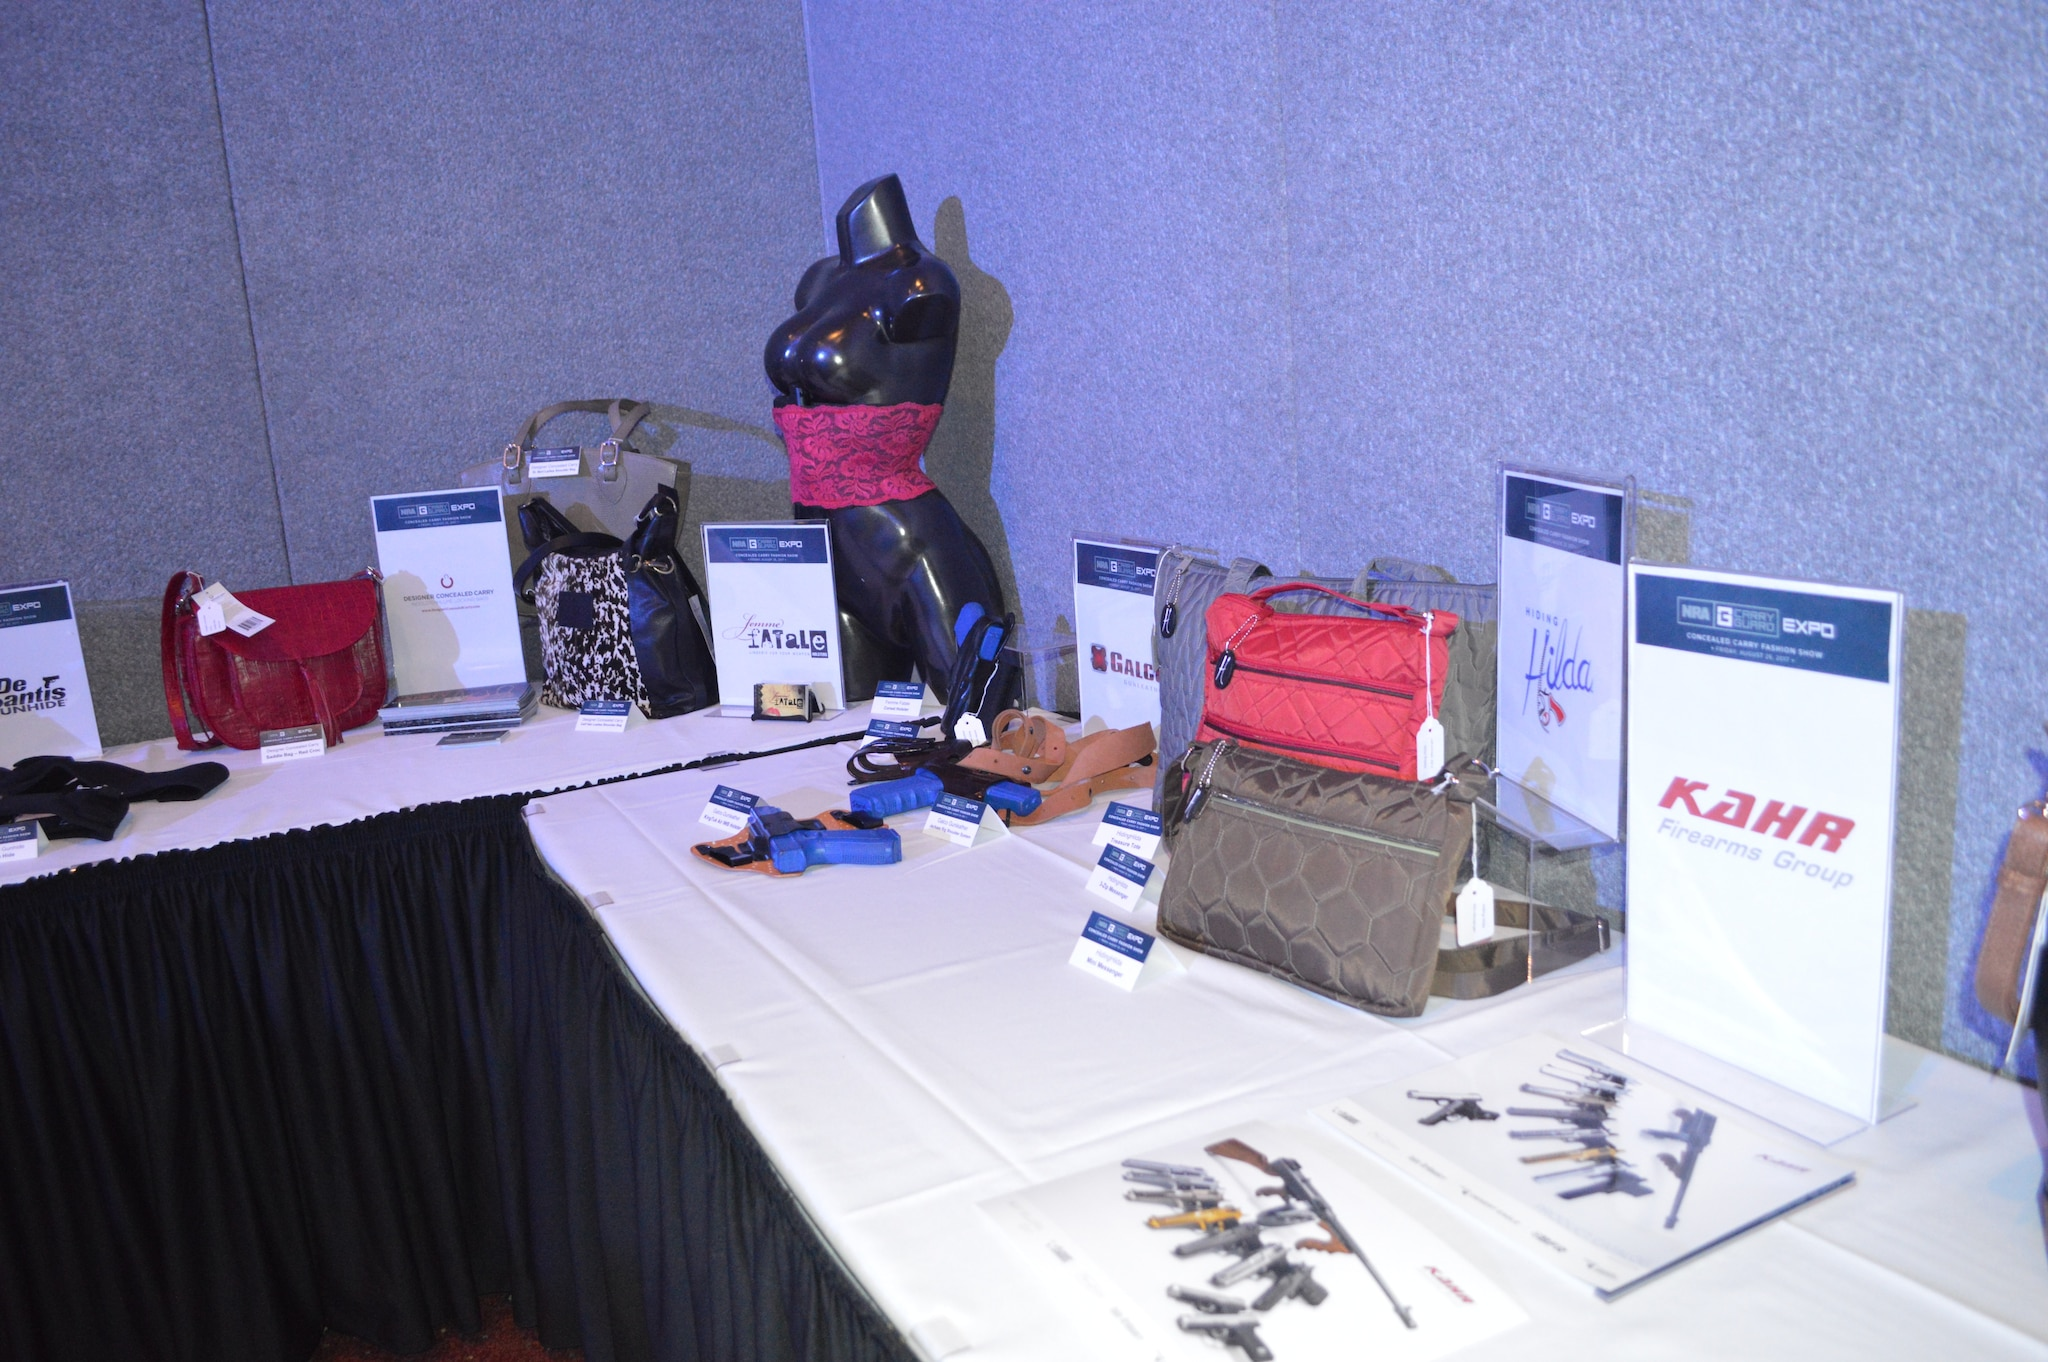 A sampling of the products featured in the fashion show. (Photo: Kristin Alberts/Guns.com)